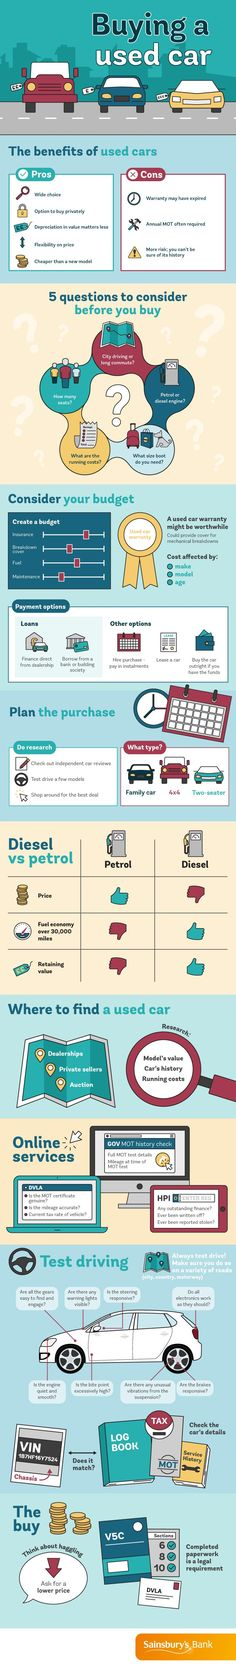 Buying a Used Car #infographic #Cars #Transportation.....Carfinance247| UK's No.1 Online Car Finance Broker goo.gl/I7pEVS